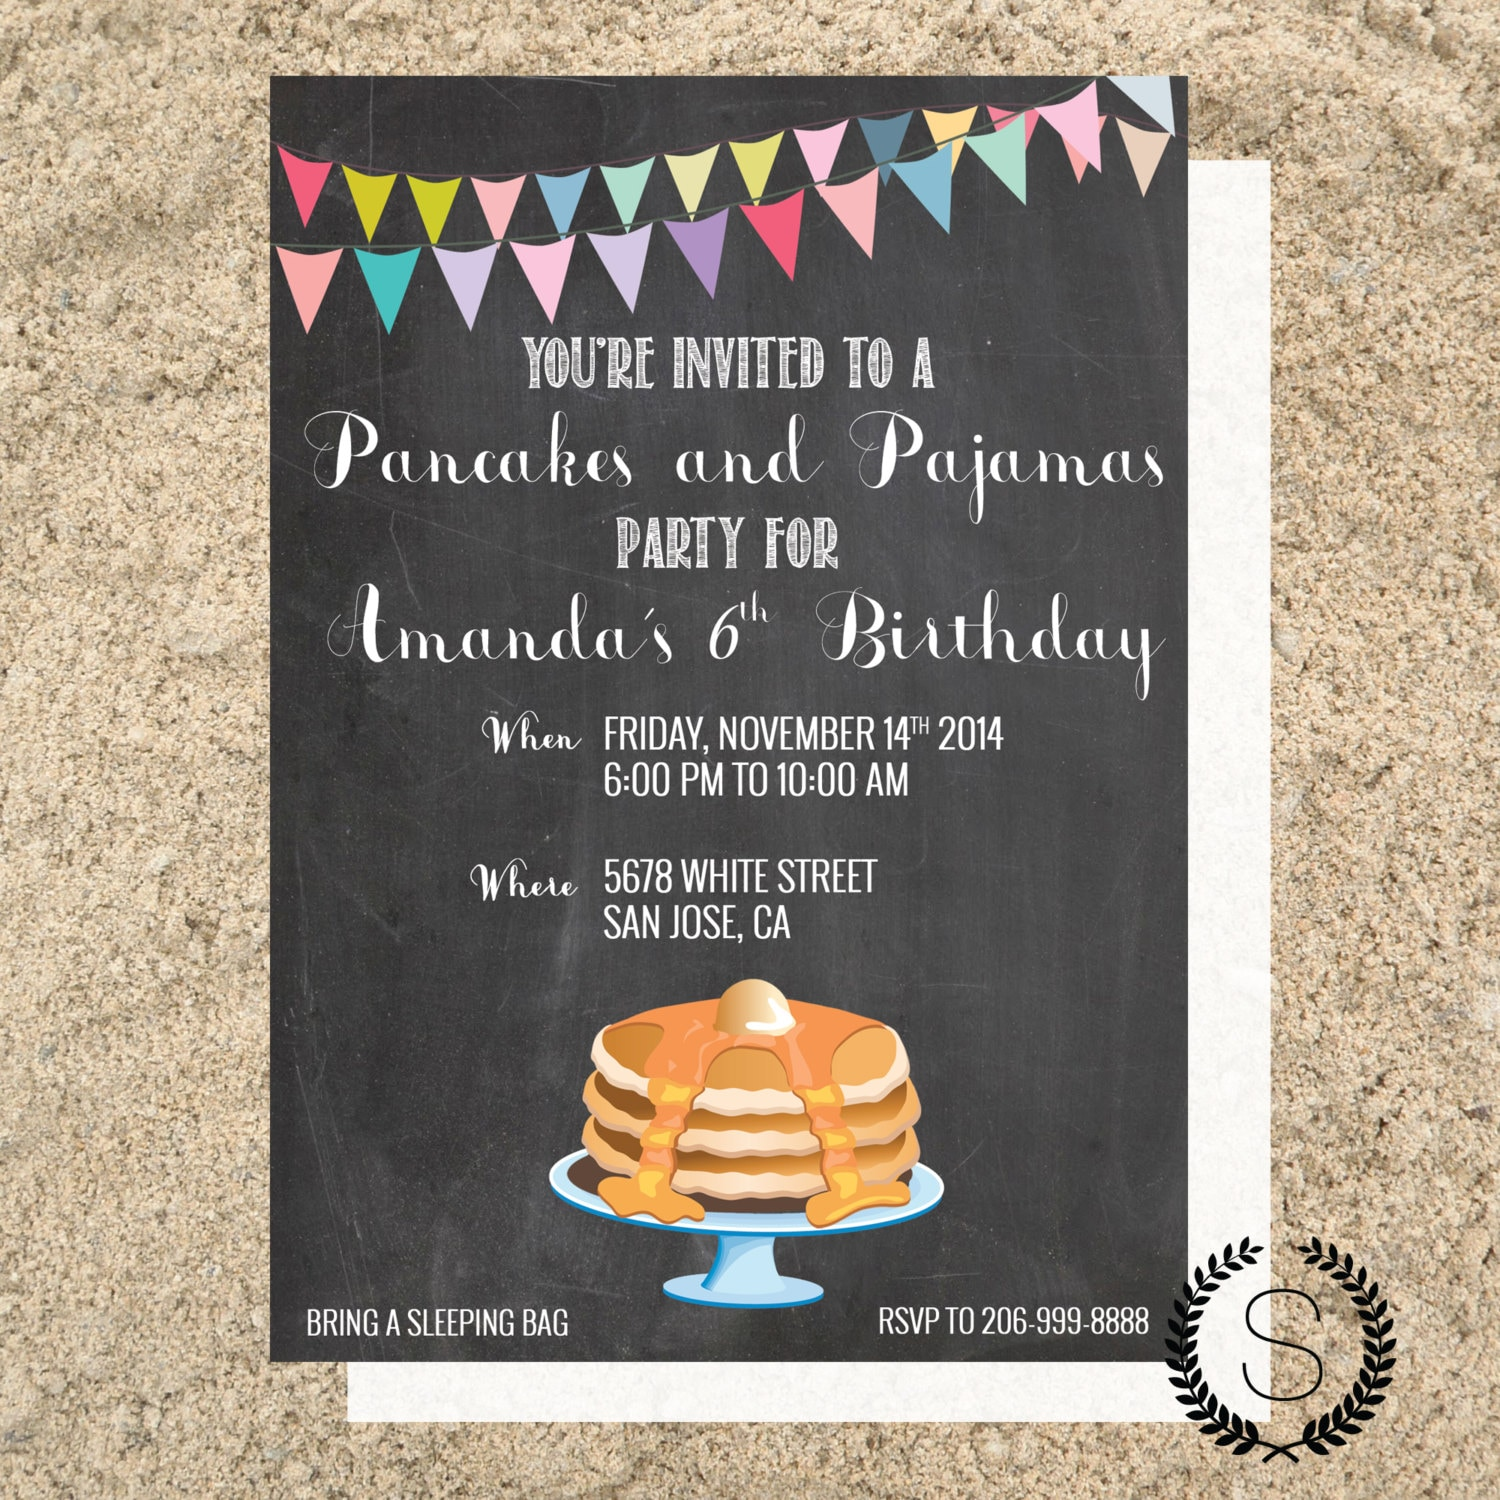 Pancakes & Pajamas Birthday Party Invitation Birthday Party